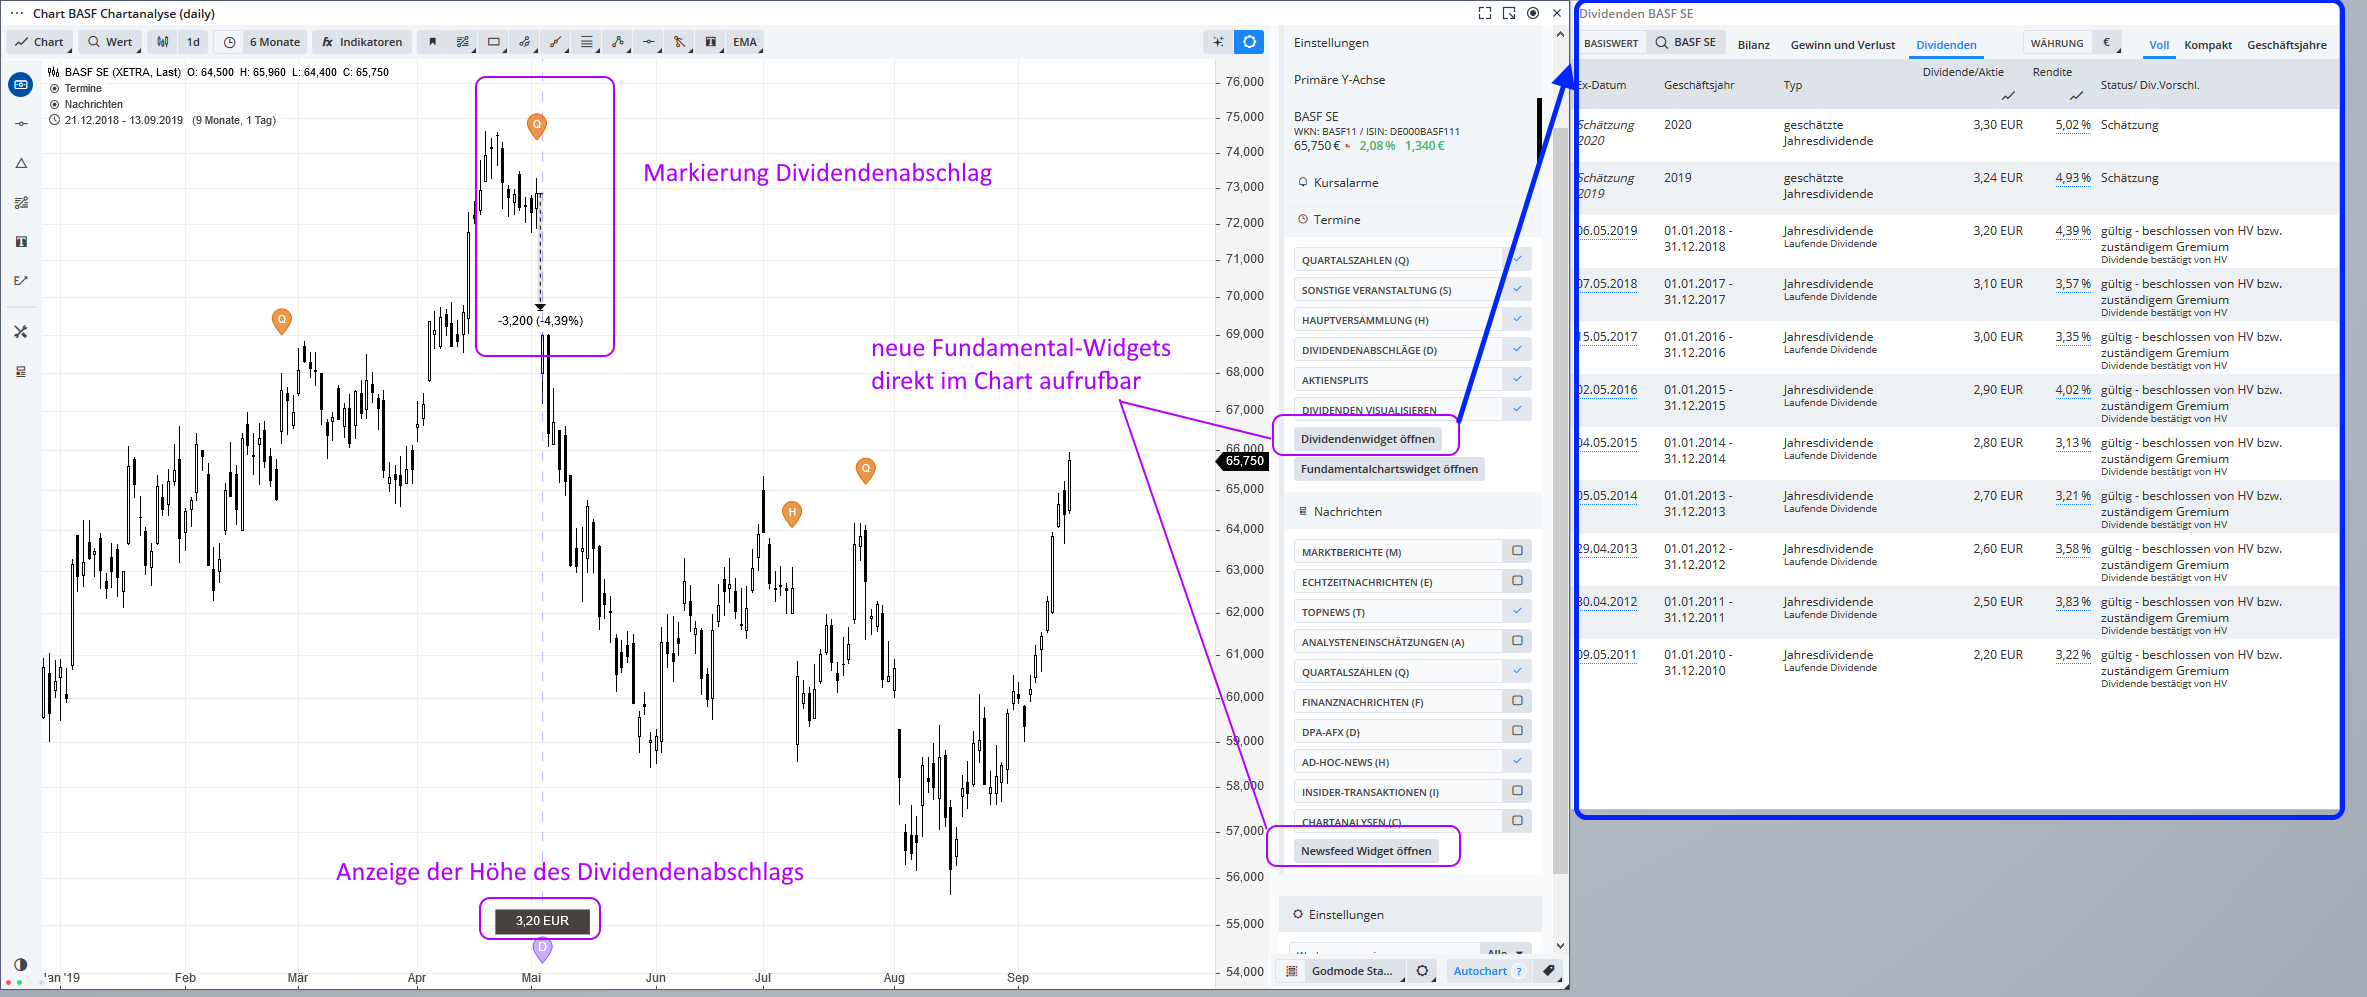 GUIDANTS-CHARTING-Das-große-Update-Thomas-May-GodmodeTrader.de-14